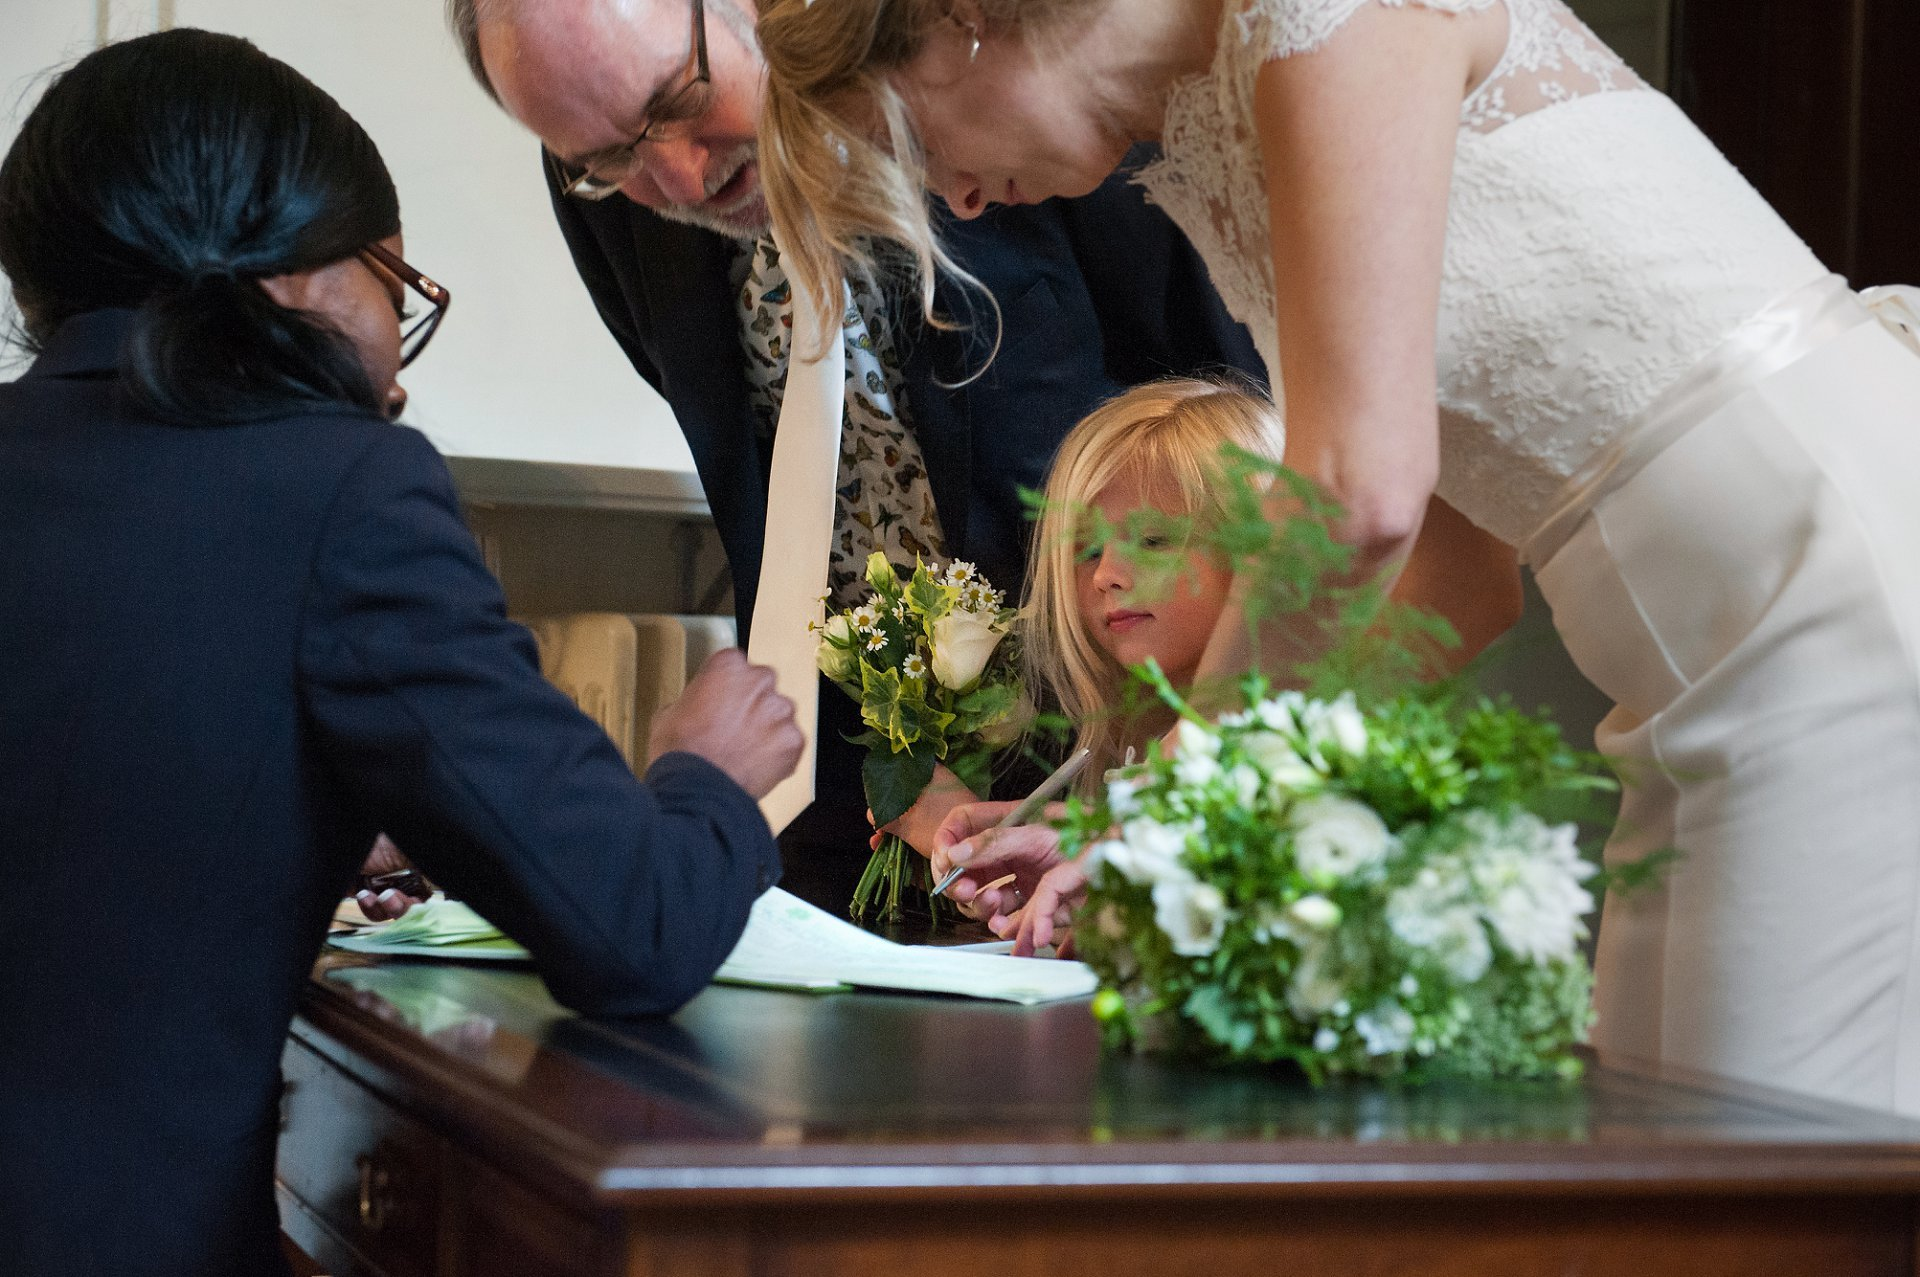 The brides' father and daughter watch as the bride completes the marriage certificate ahead of her Fulham Palace wedding